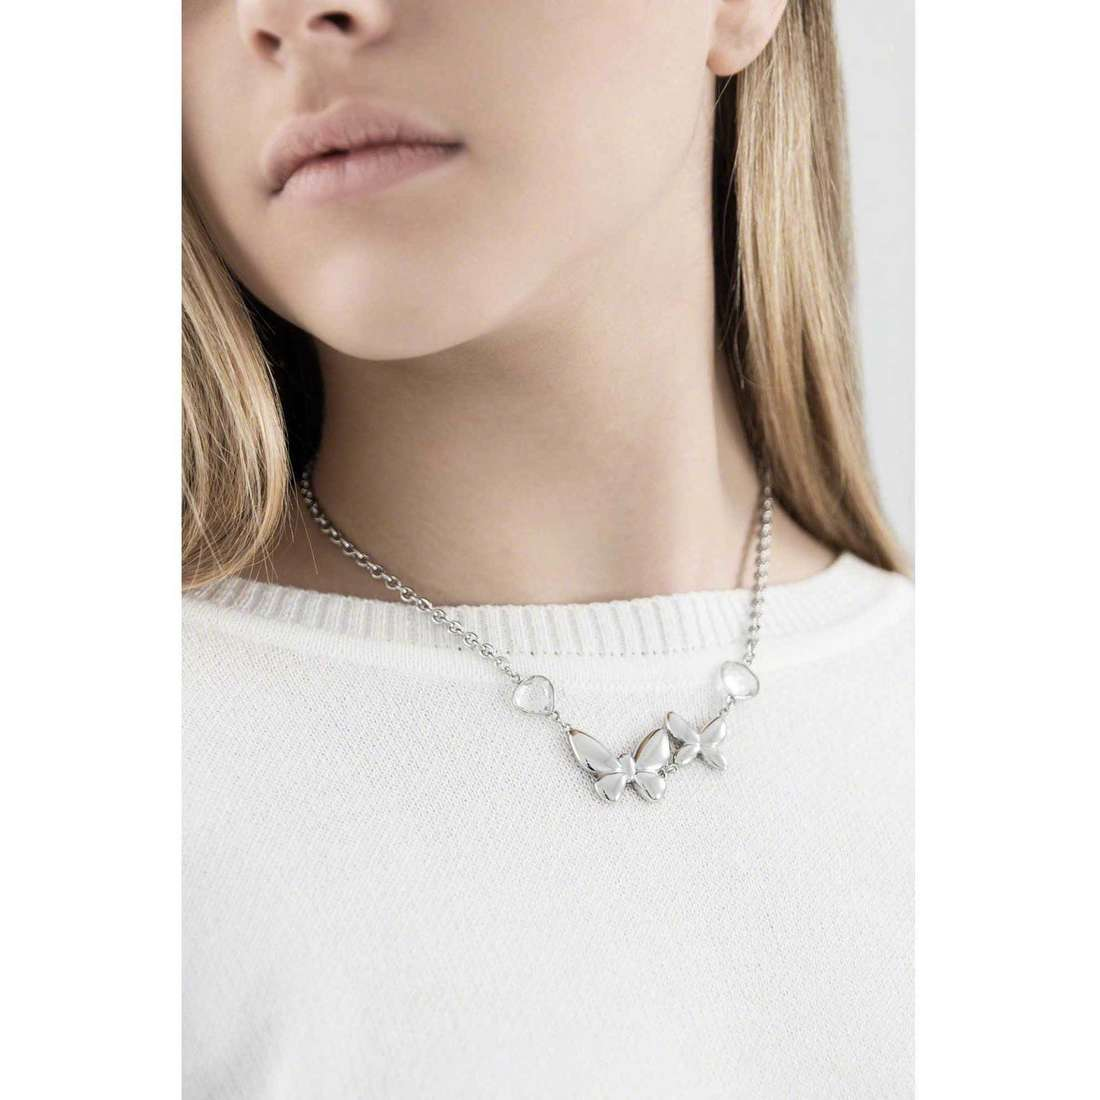 Morellato necklaces Volare woman SOX03 indosso